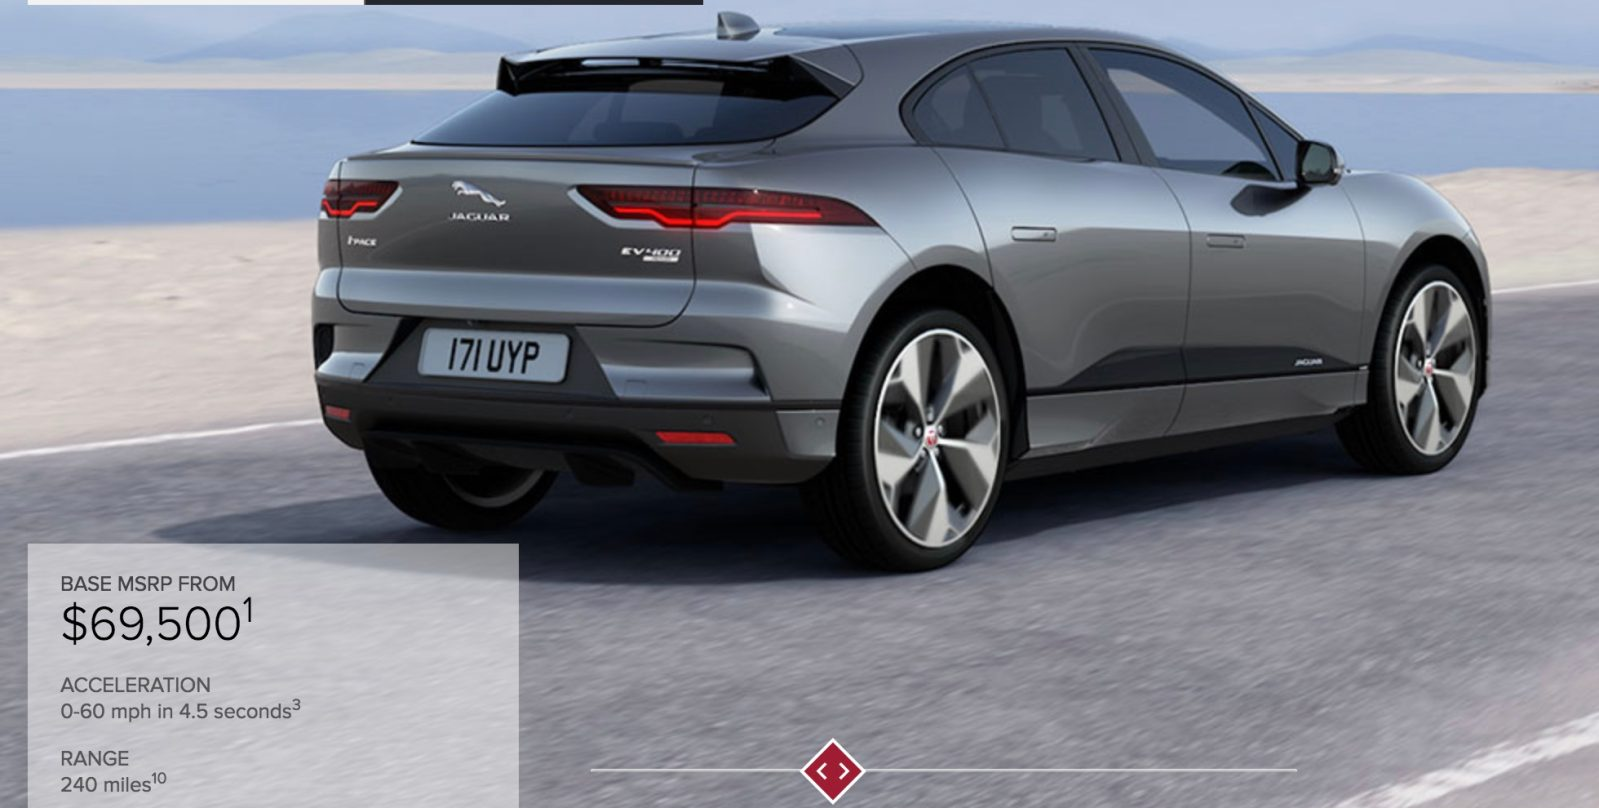 jaguar i pace review roundup 20 early videos are mostly positive but lack ev context electrek. Black Bedroom Furniture Sets. Home Design Ideas